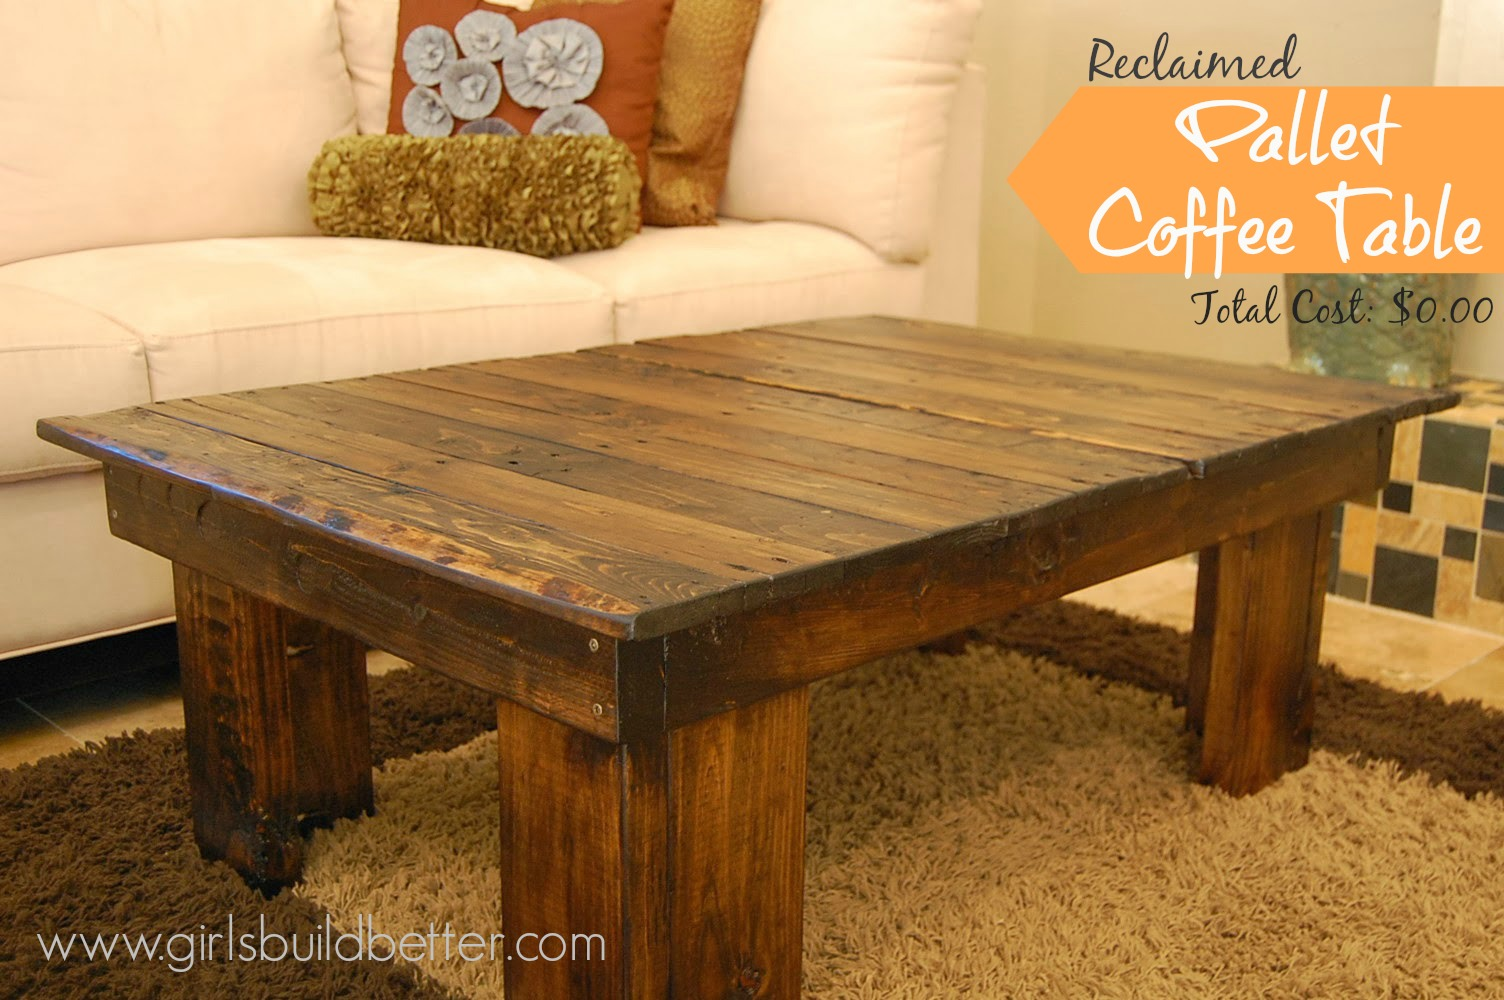 reclaimed pallet coffee table mylitter one deal at a time. Black Bedroom Furniture Sets. Home Design Ideas